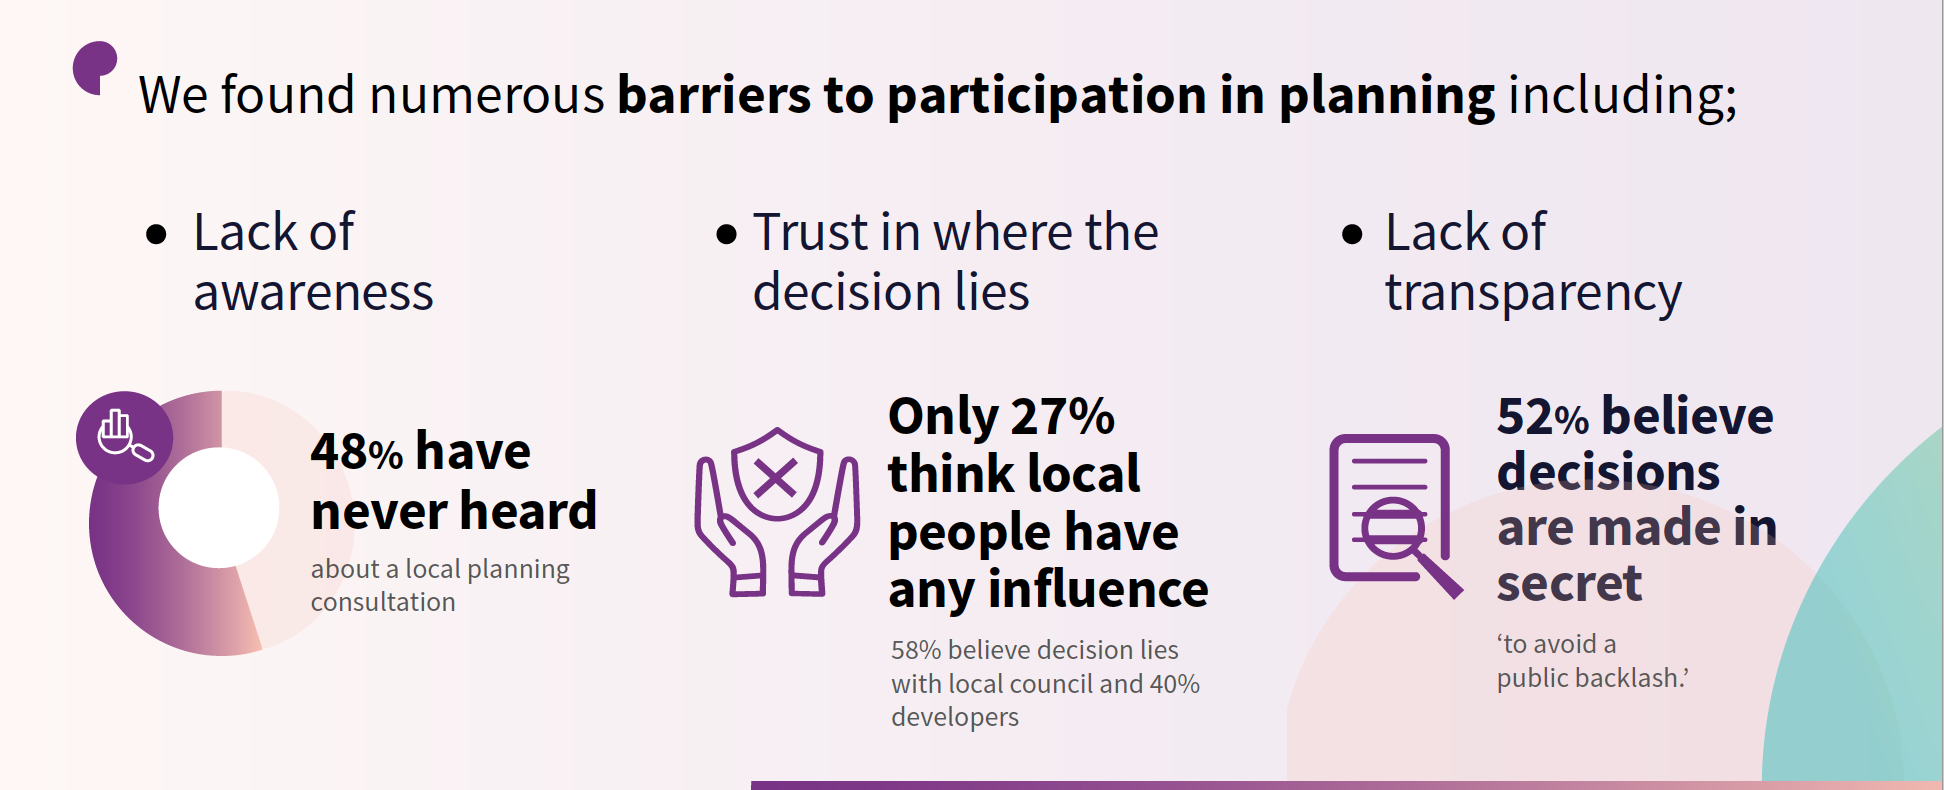 Barriers to participation in planning